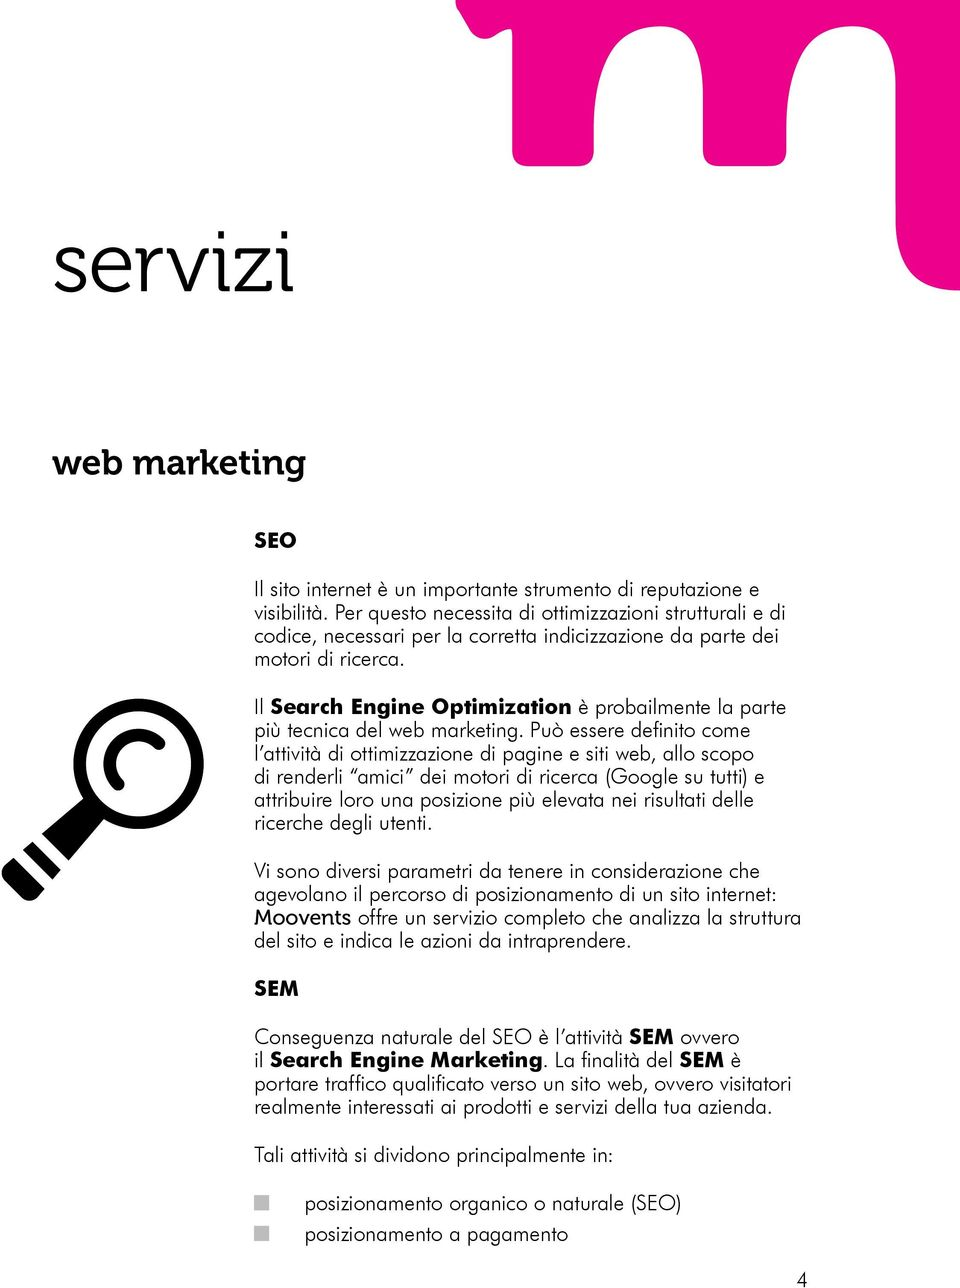 Il Search Engine Optimization è probailmente la parte più tecnica del web marketing.